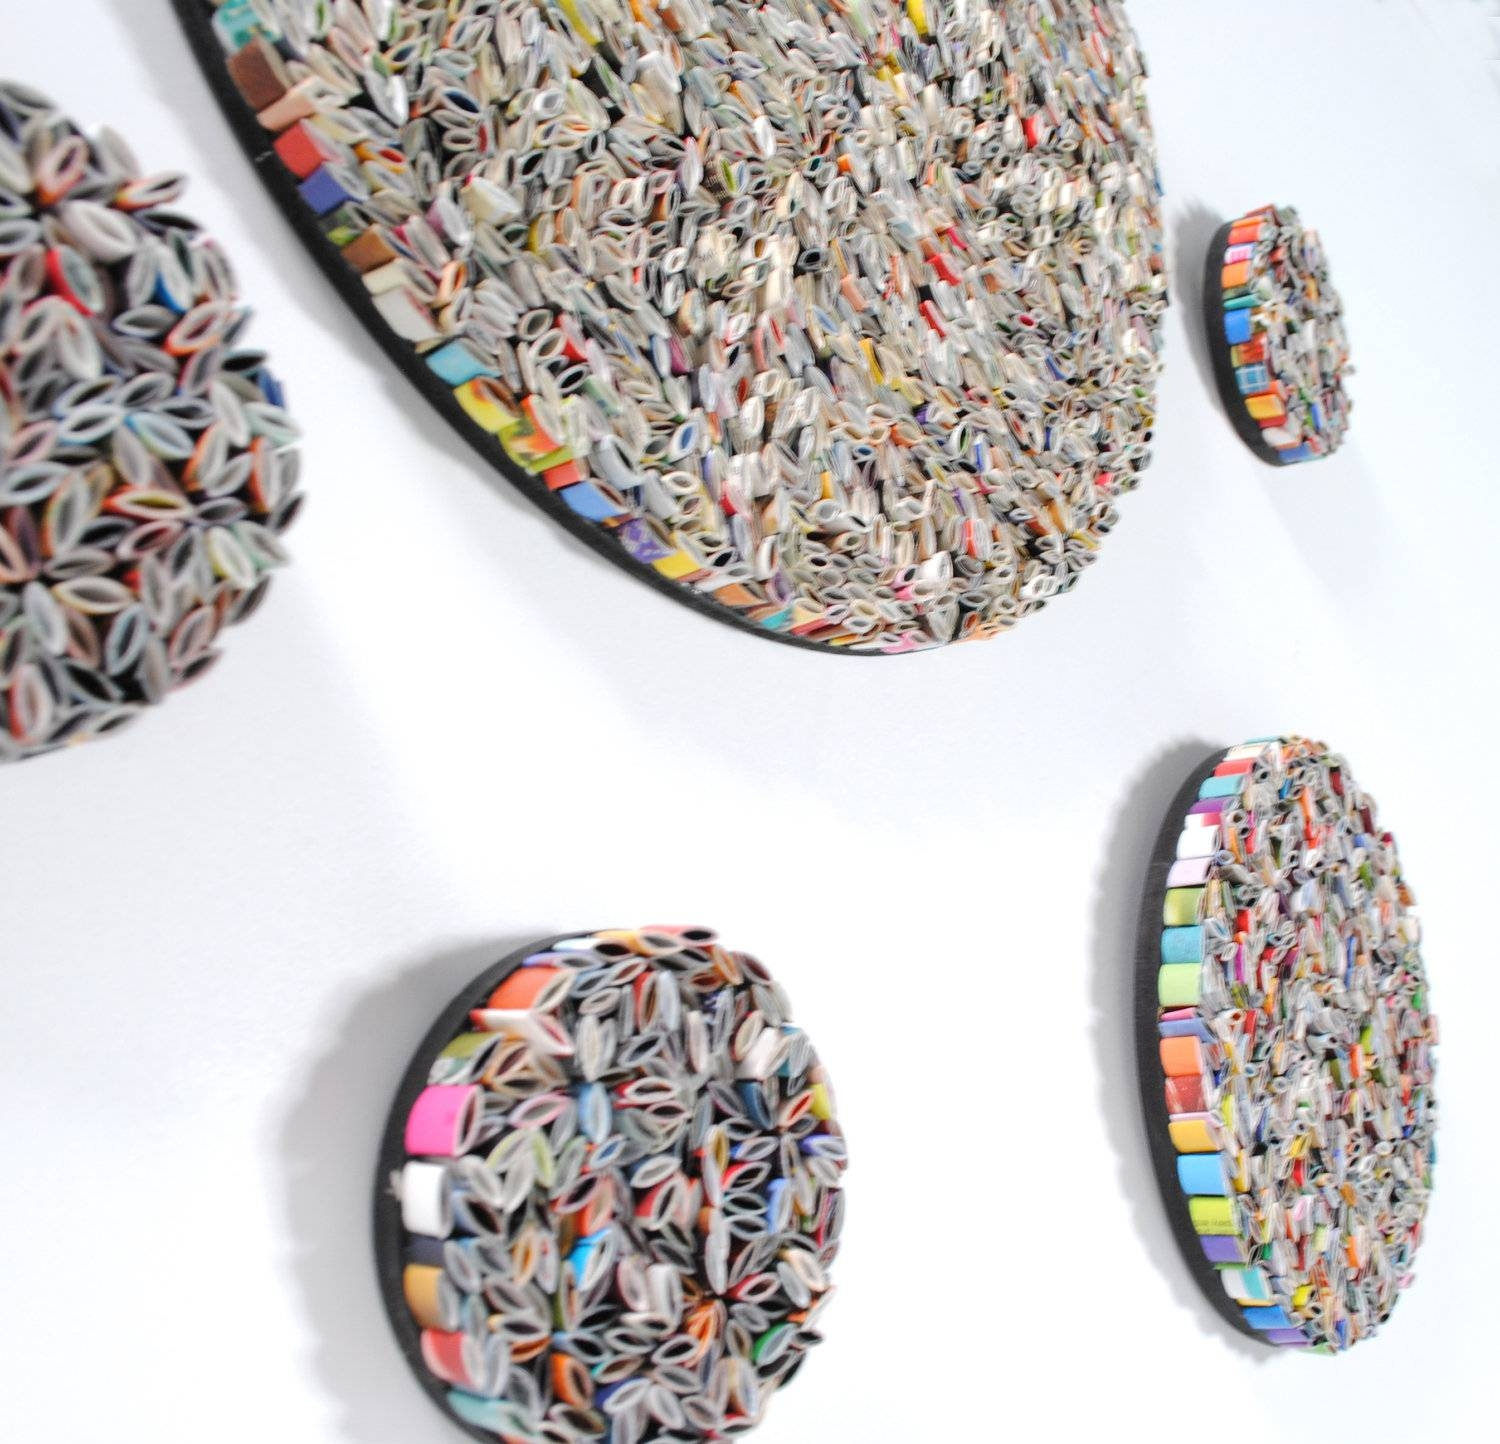 Set Of 5 Round Wall Art Made From Recycled Magazines, Colorful Inside Most Current Recycled Wall Art (View 5 of 30)